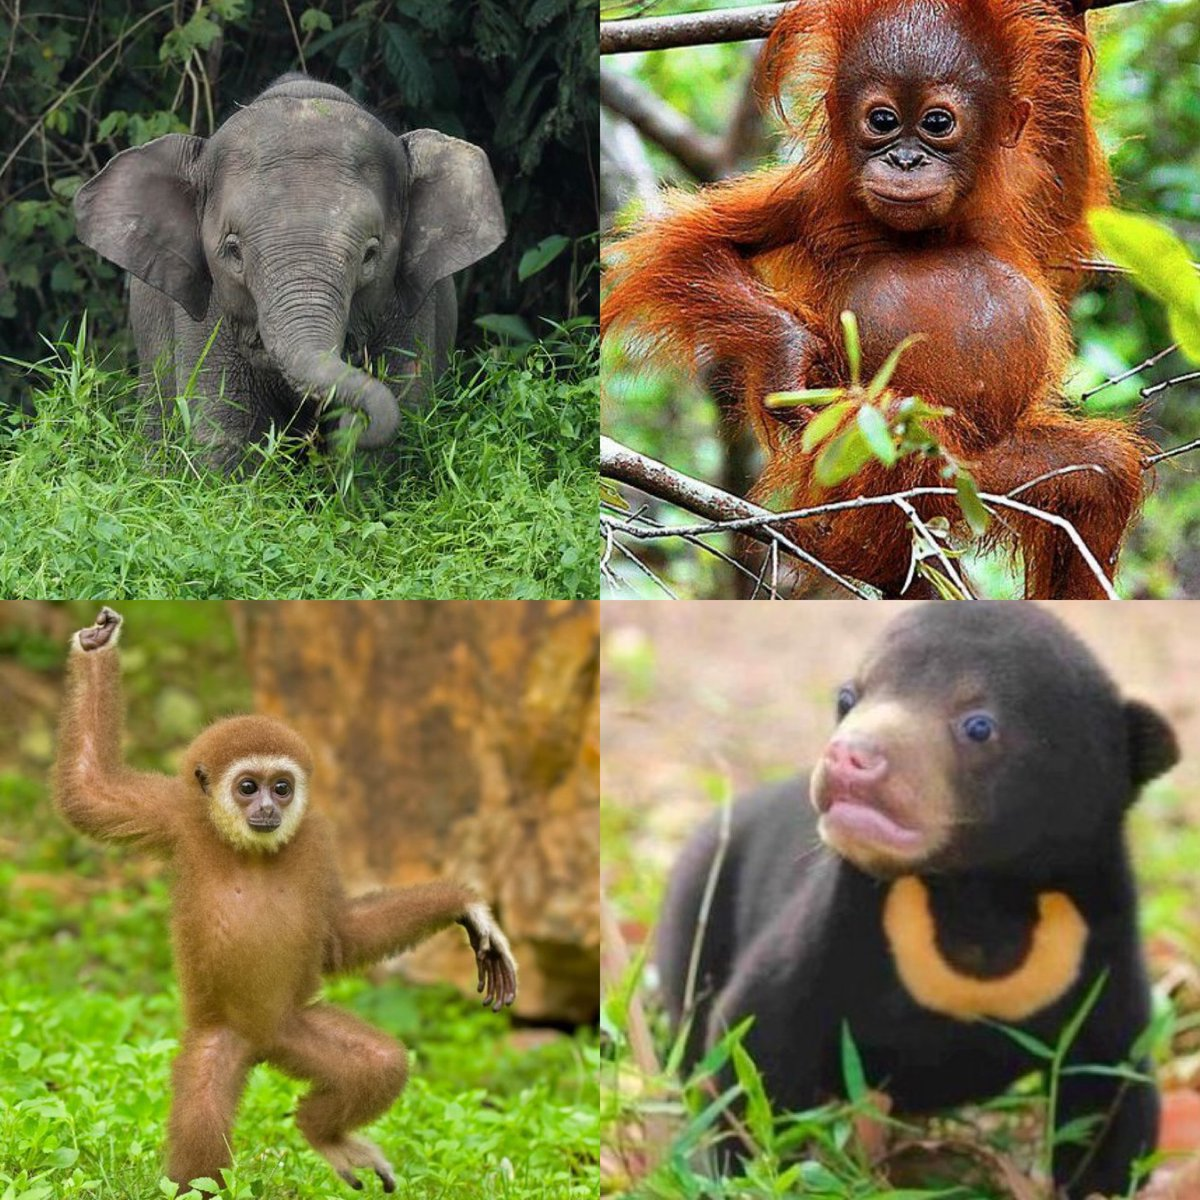 Today's in class conversation talked about how each of these animals is being affected by the palm oil industry. <a target='_blank' href='http://search.twitter.com/search?q=APSGreen'><a target='_blank' href='https://twitter.com/hashtag/APSGreen?src=hash'>#APSGreen</a></a> <a target='_blank' href='https://t.co/AFJ8e3ImpO'>https://t.co/AFJ8e3ImpO</a>